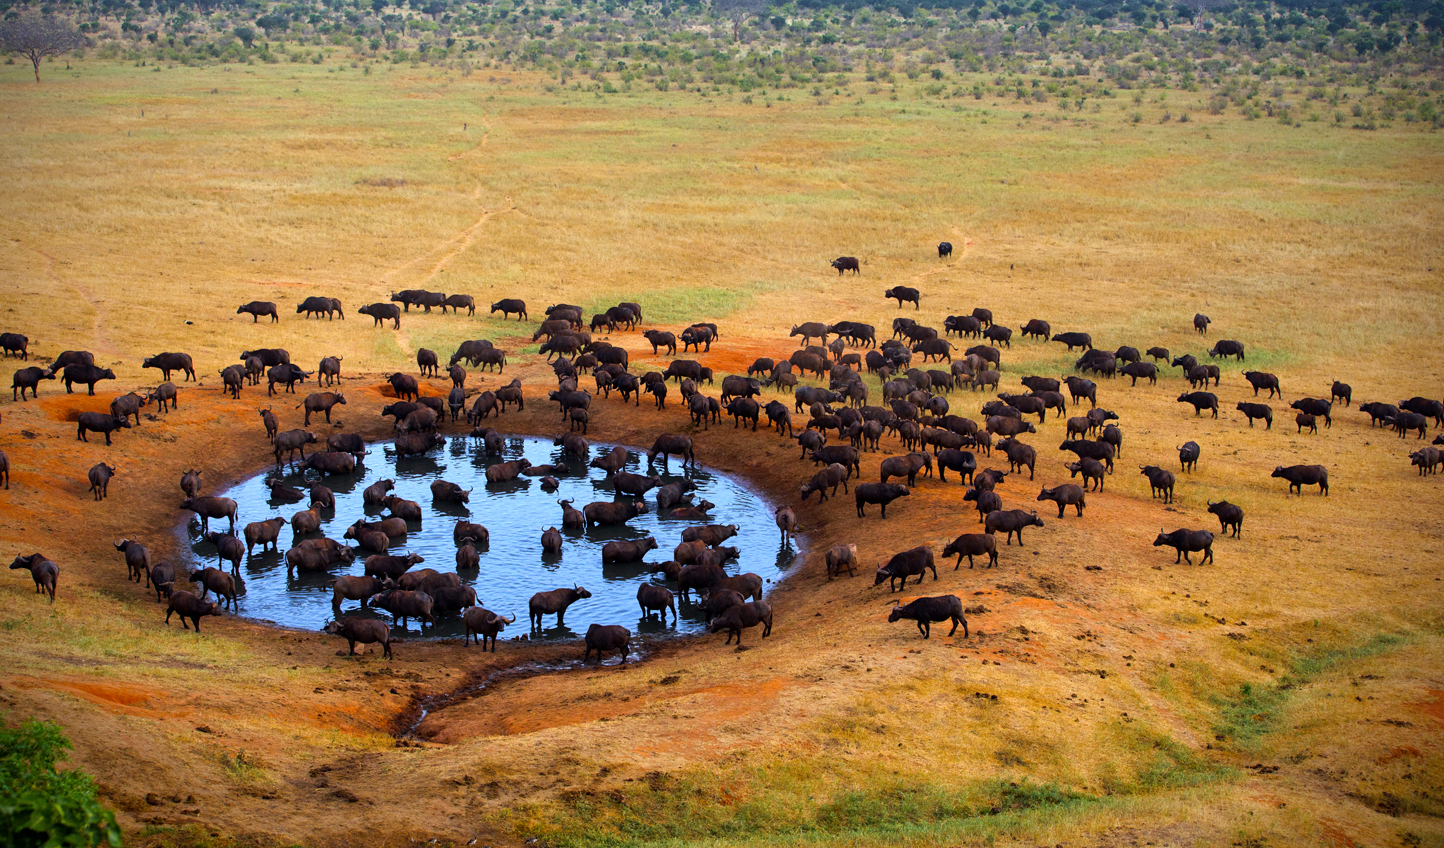 Elephants at the watering hole in the Sera Conservancy